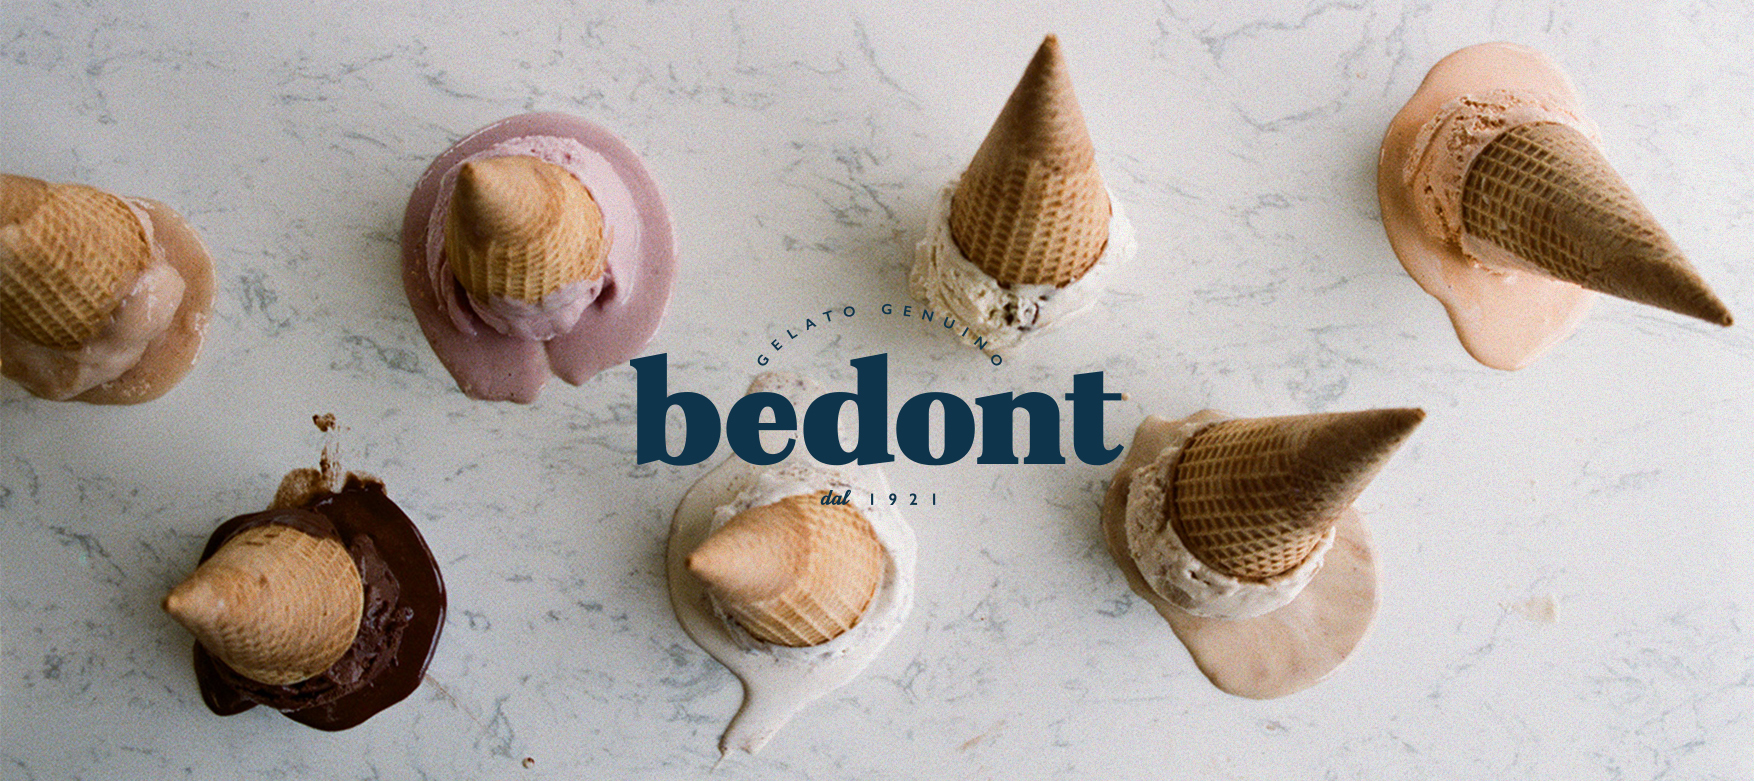 Bedont ice cream logo